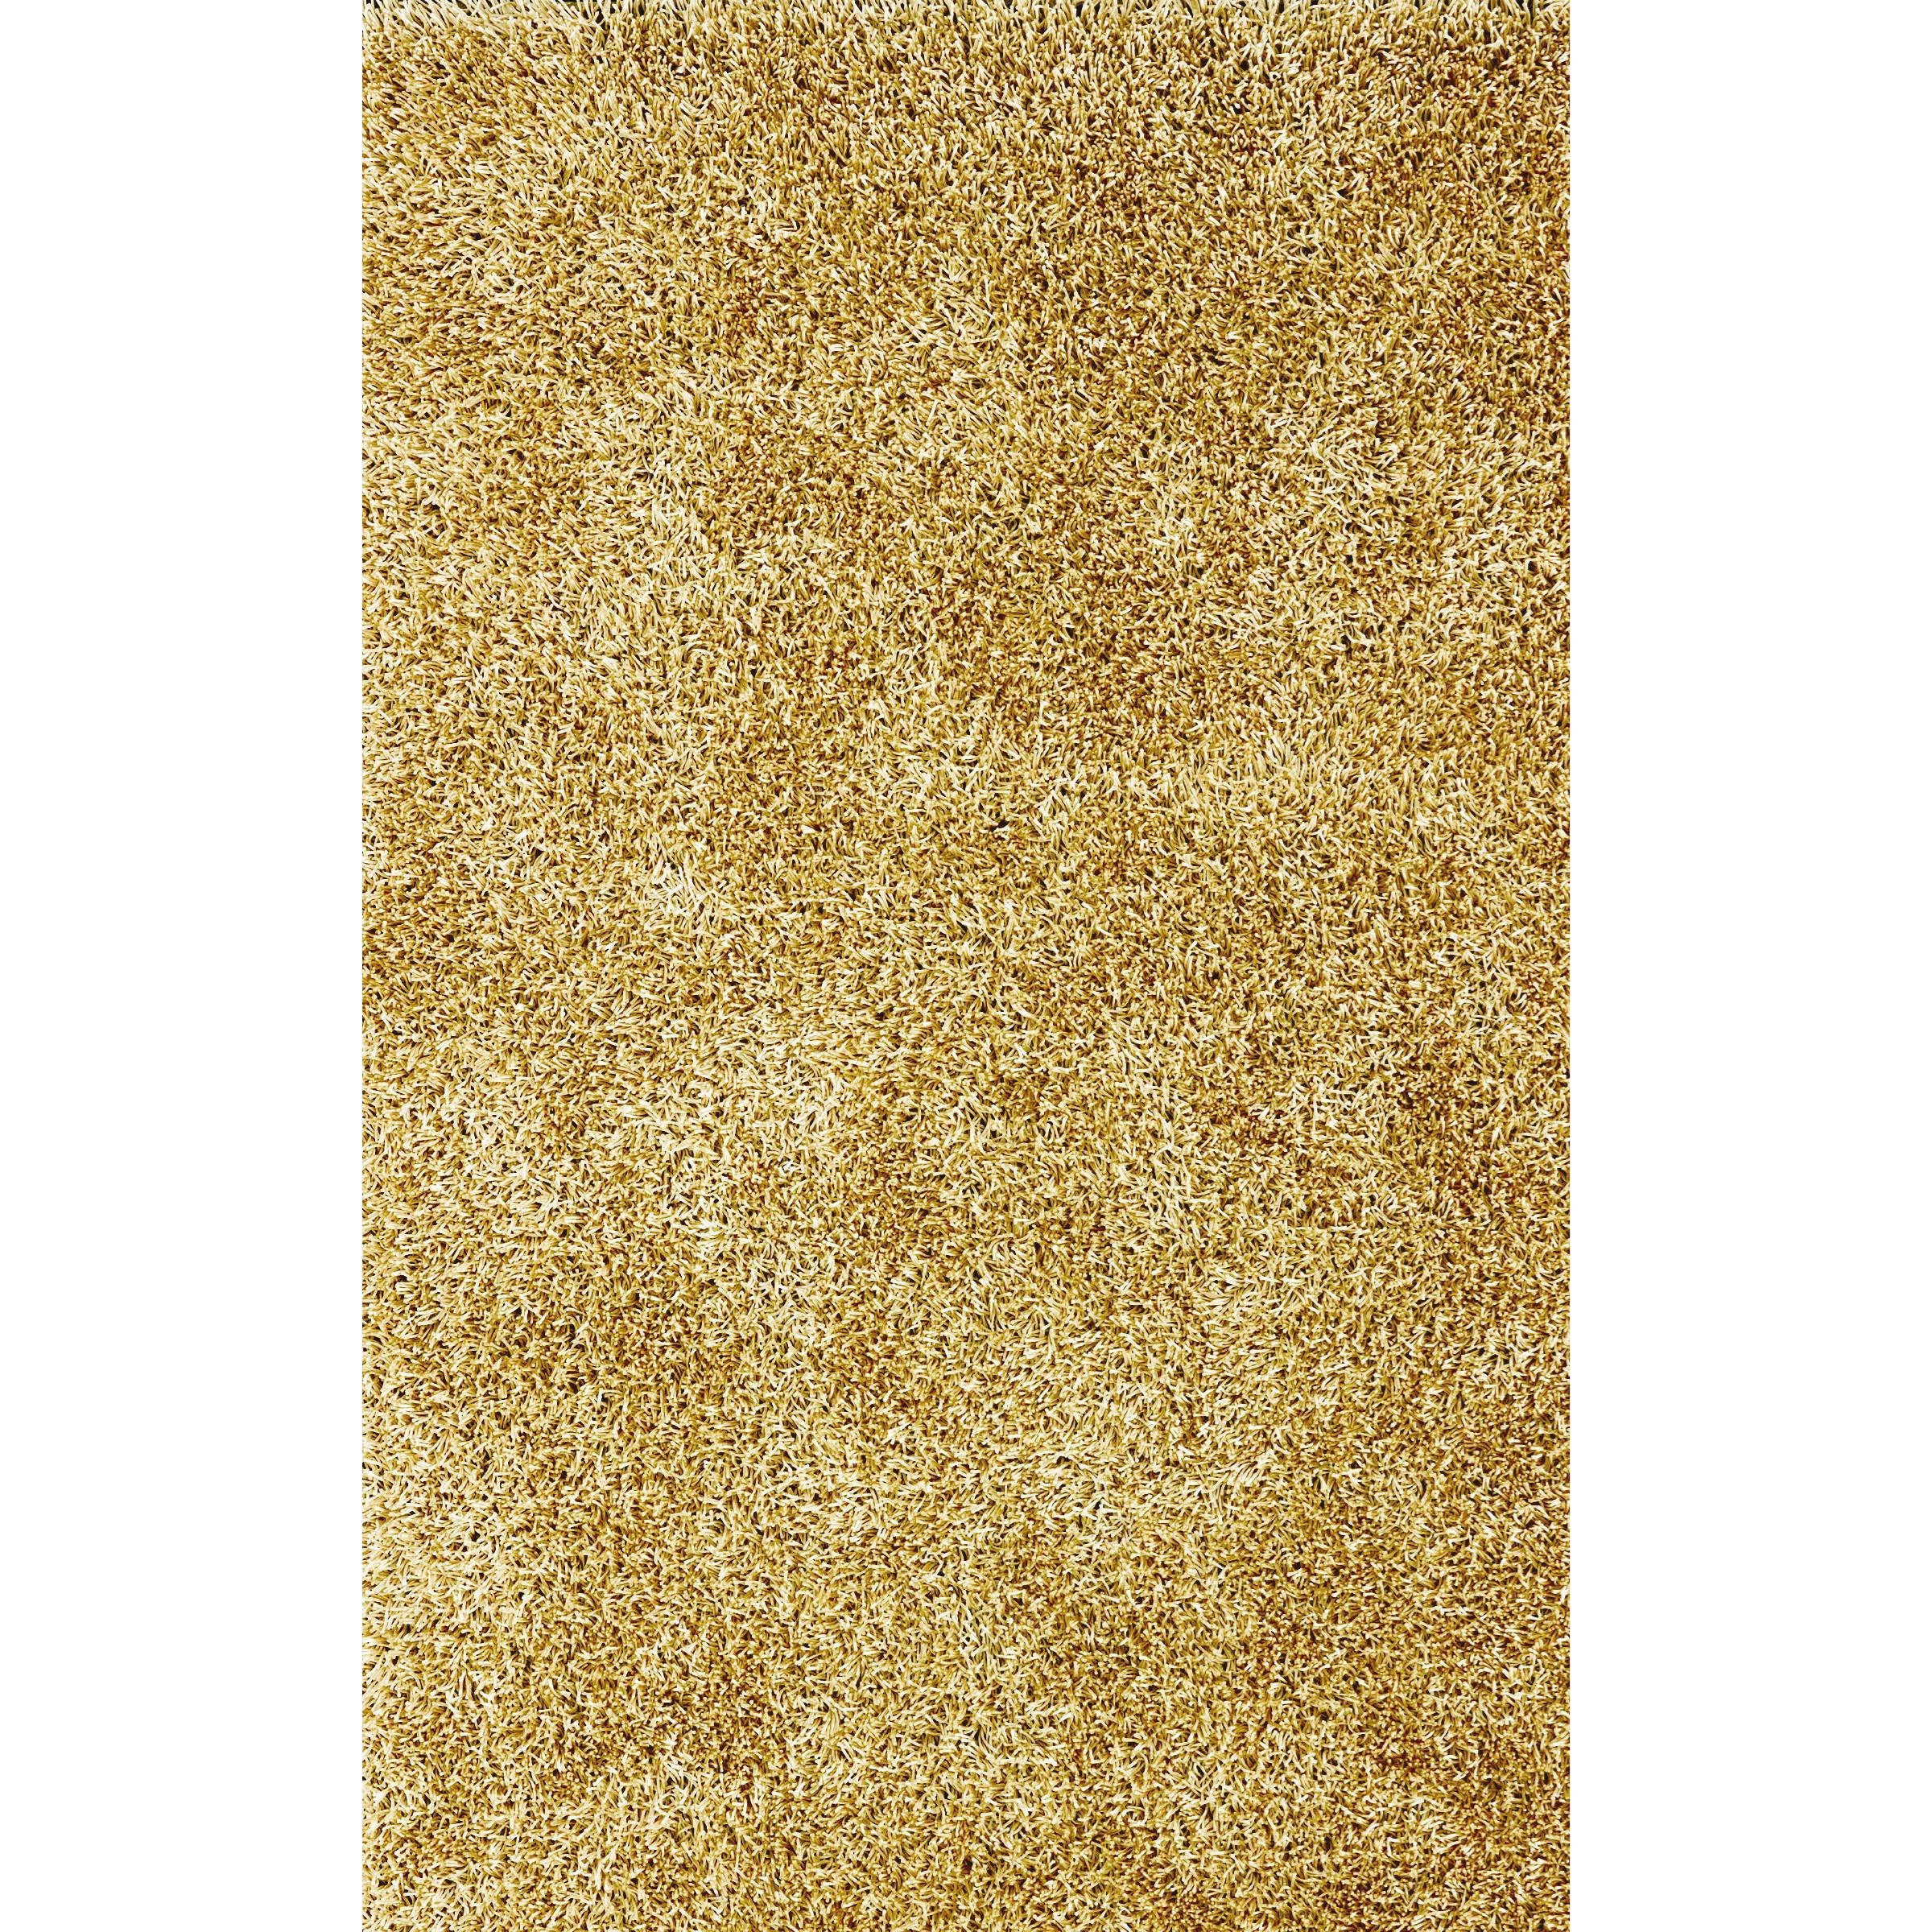 Dalyn Illusions Beige 9'X13' Rug - Item Number: IL69BE9X13